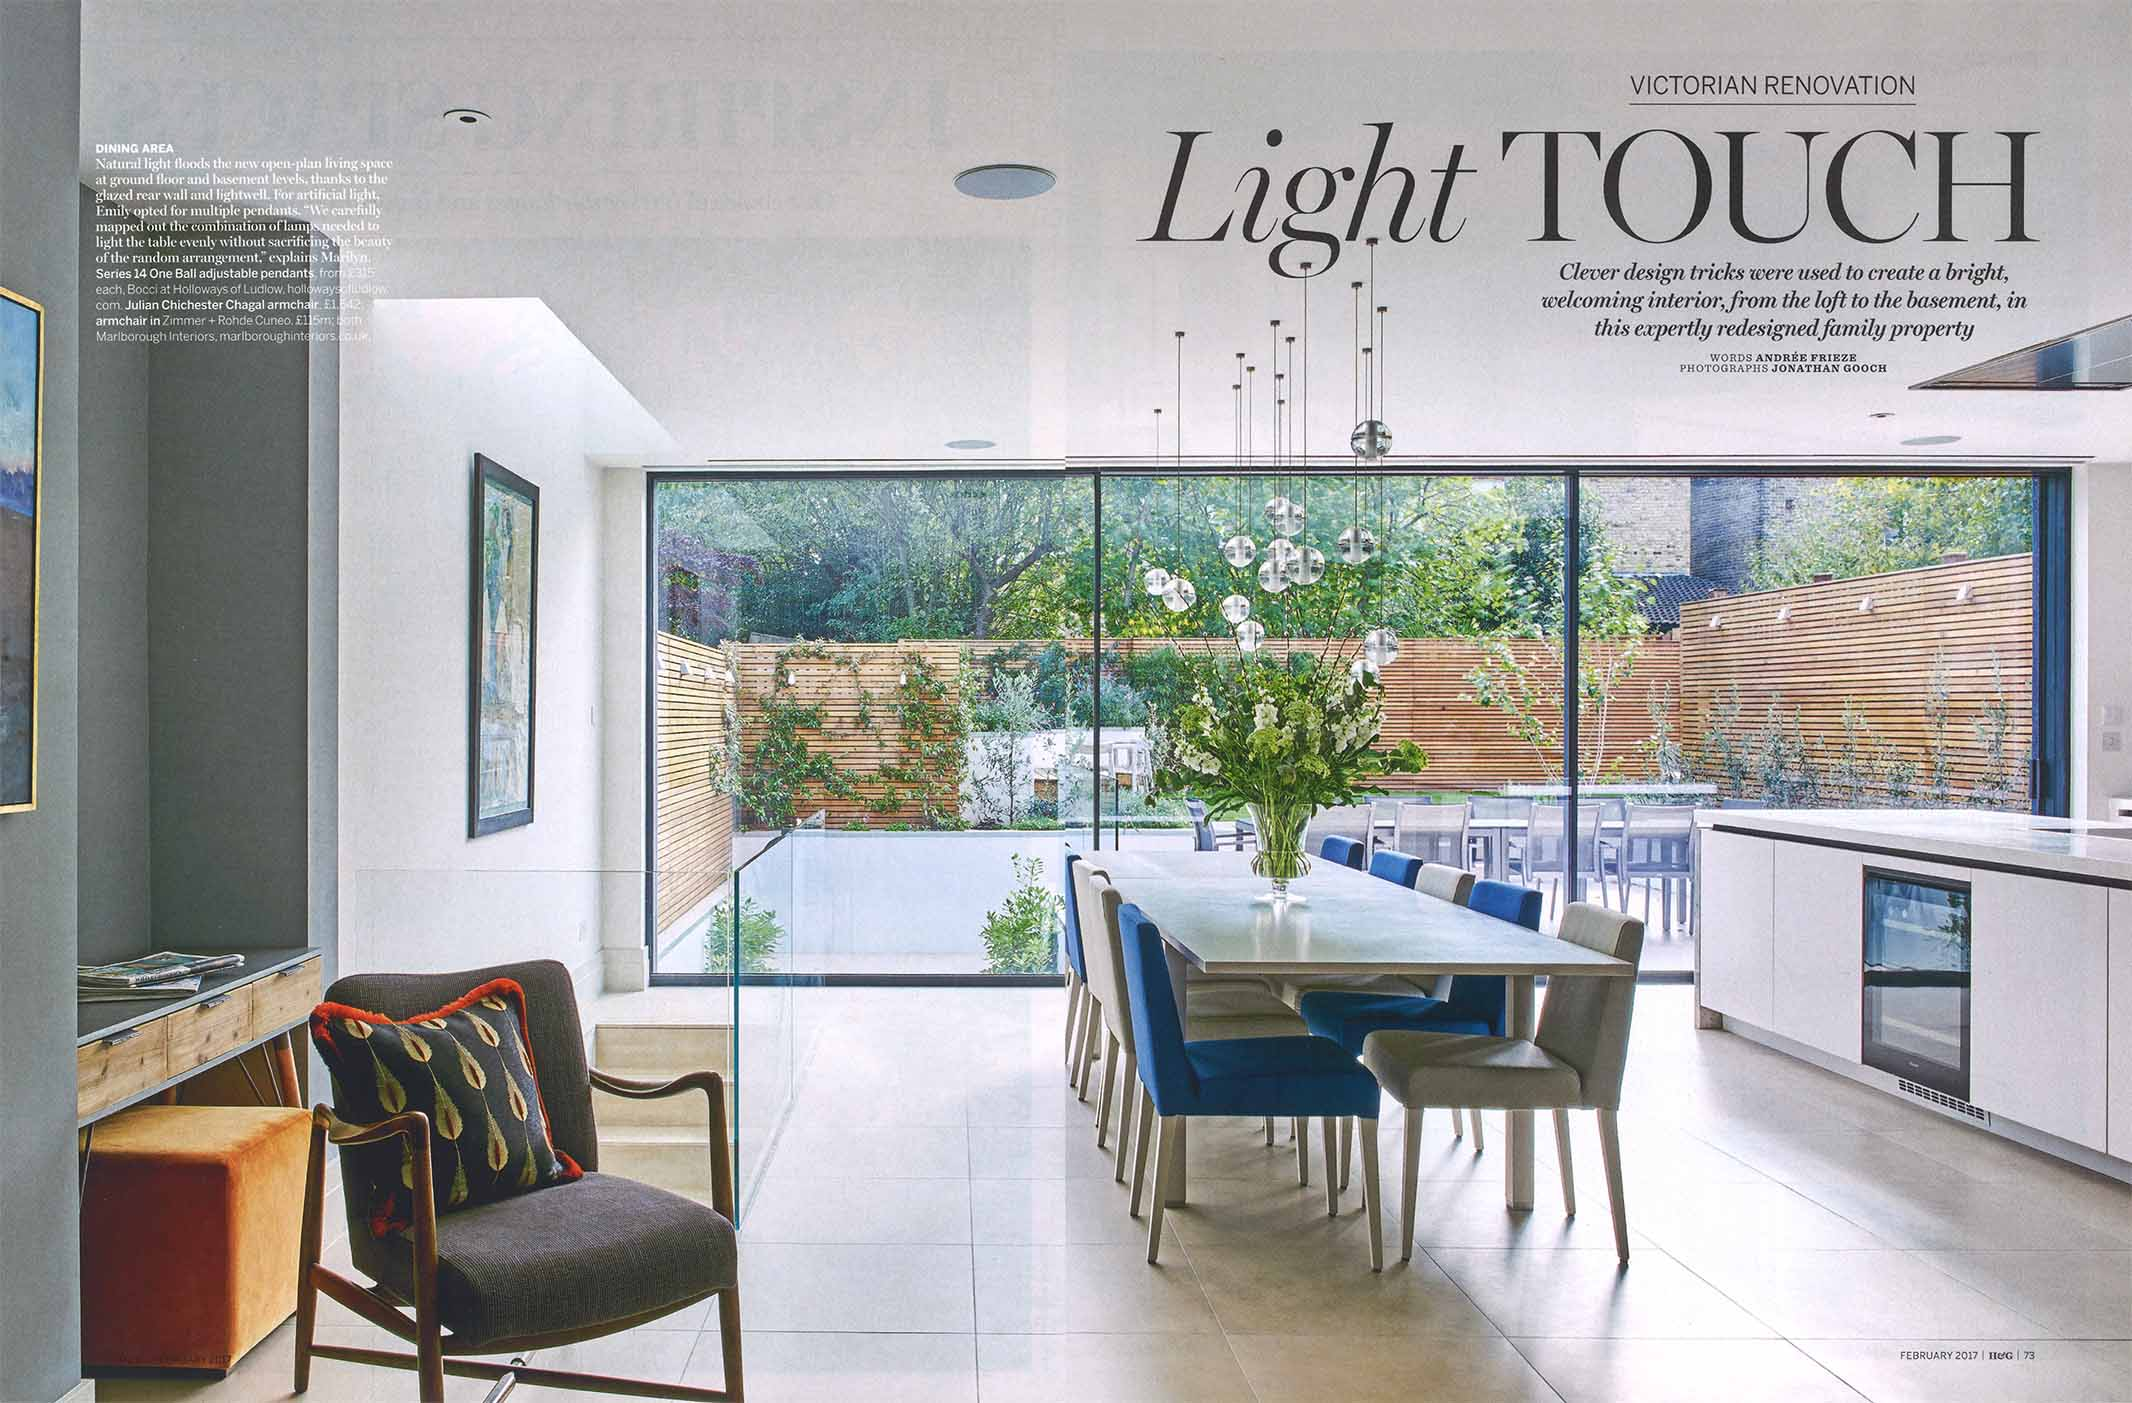 homes-and-gardens-p72-73